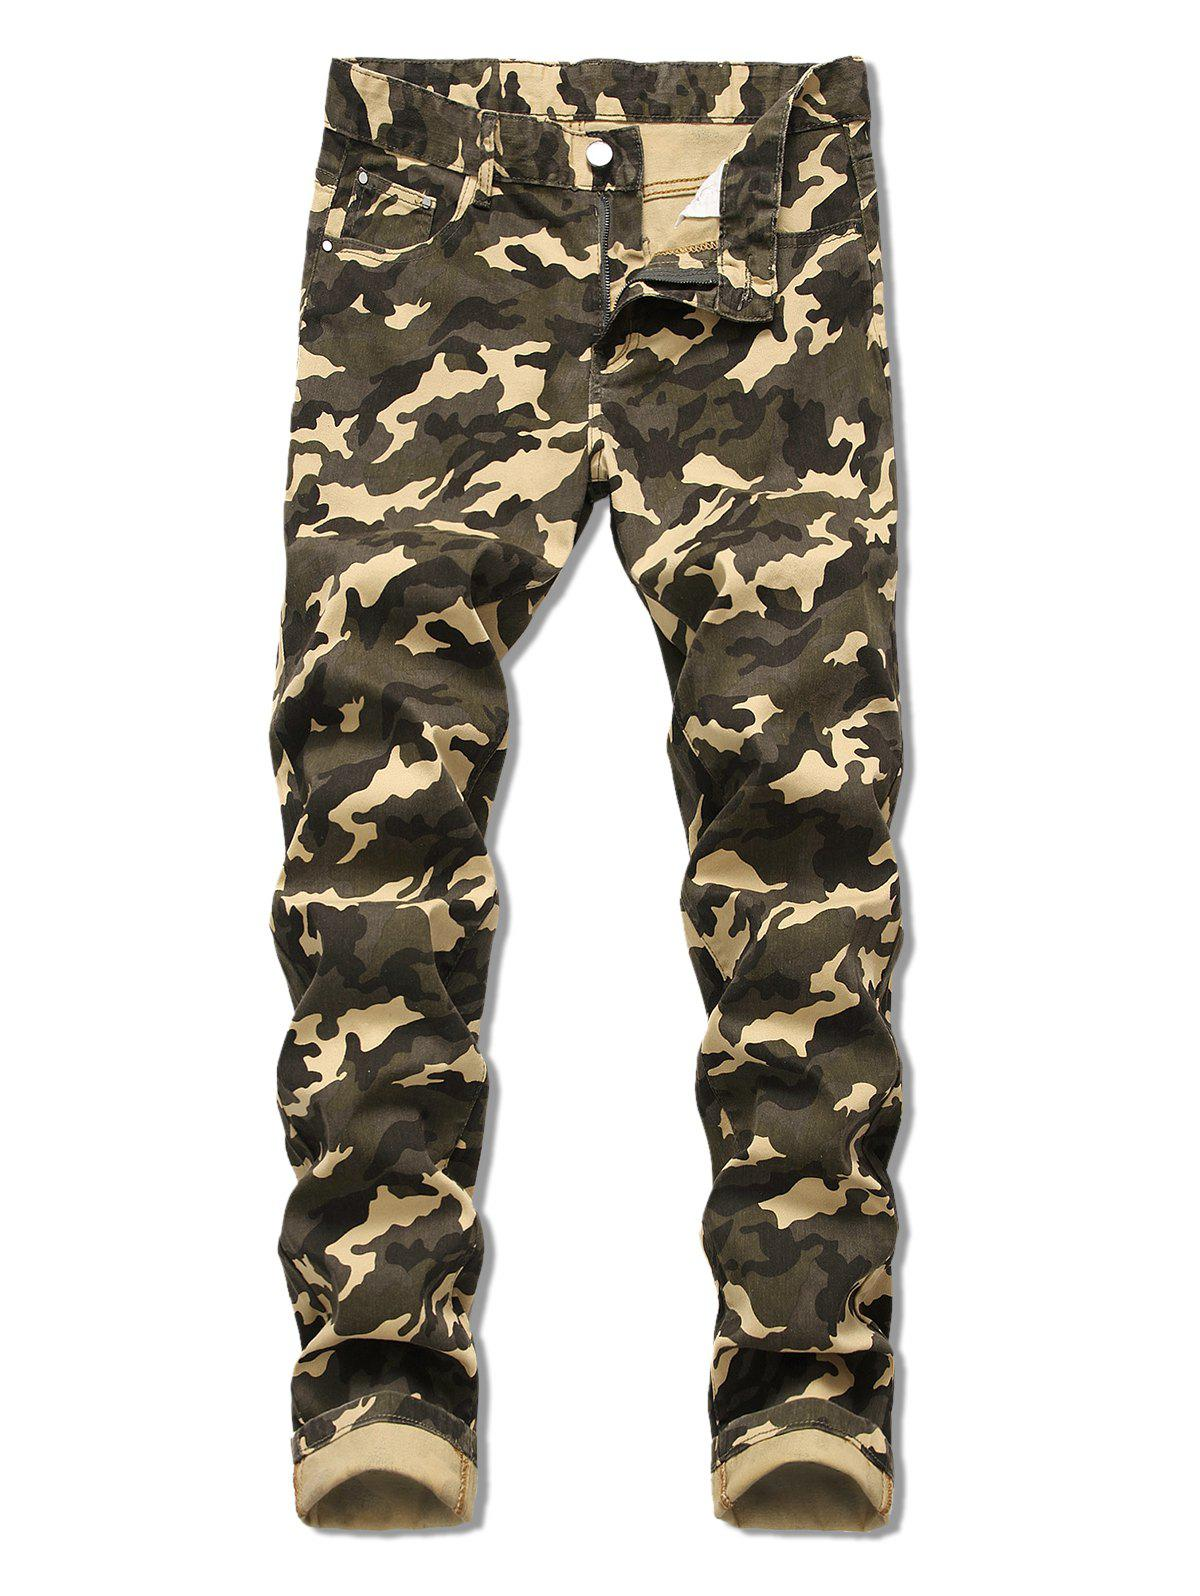 Camo Pattern Zip Fly Casual Jeans - ARMY GREEN 34